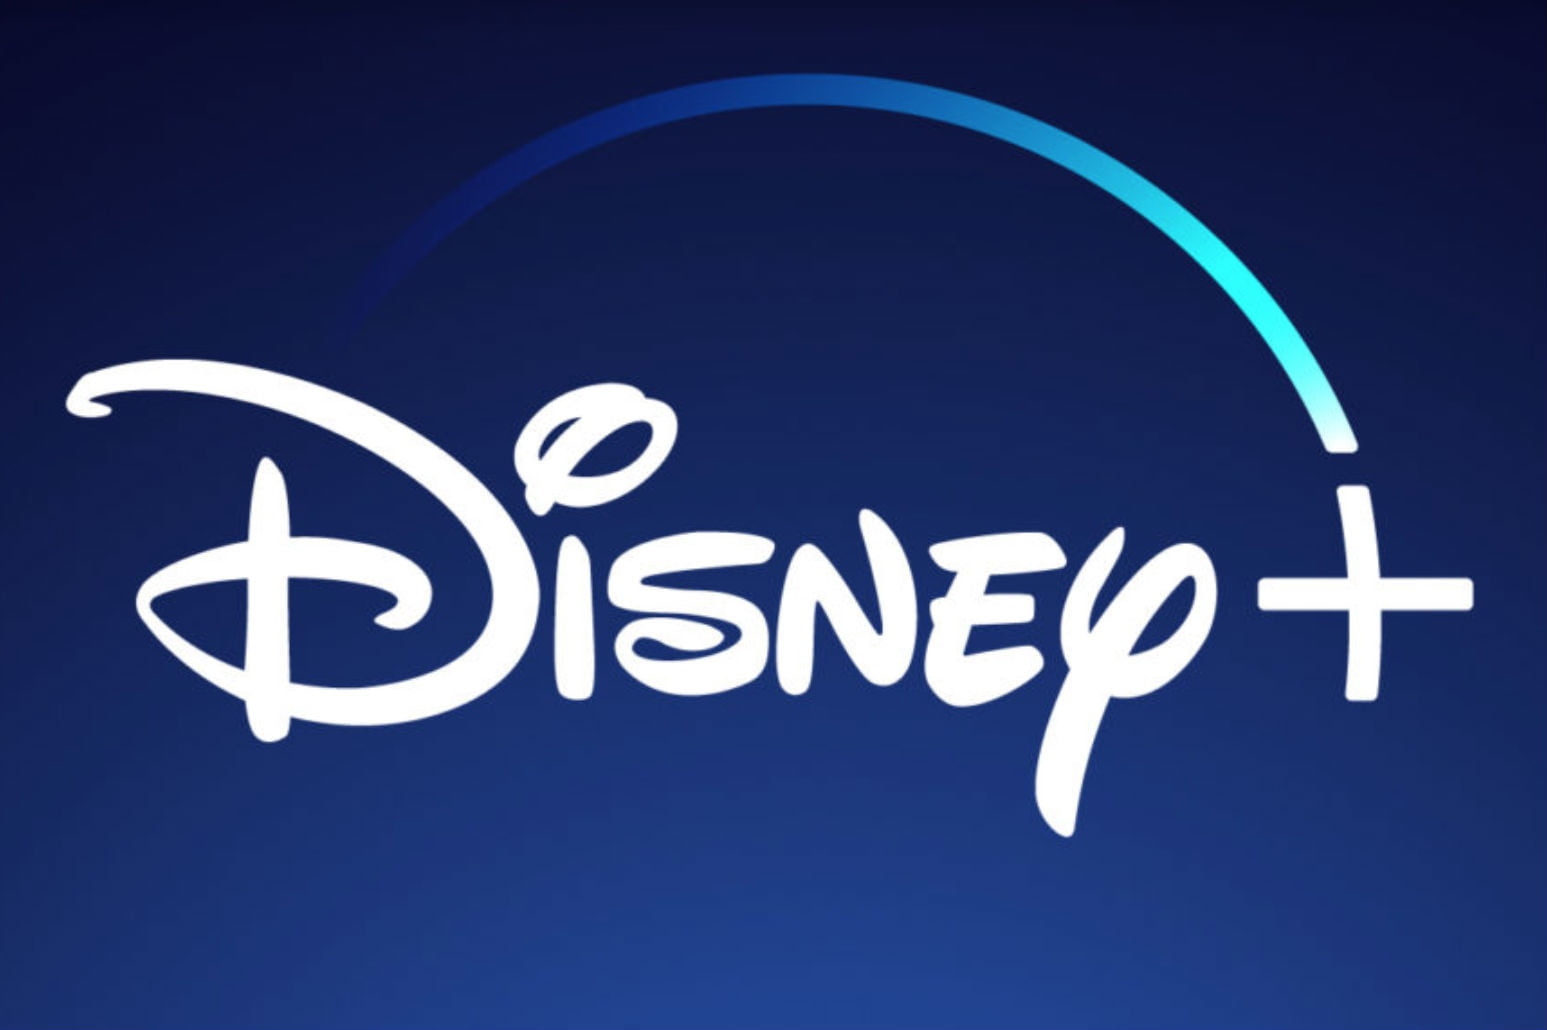 Download Disney+ Plus APK v1 0 - 2019 | GadgetsTwist